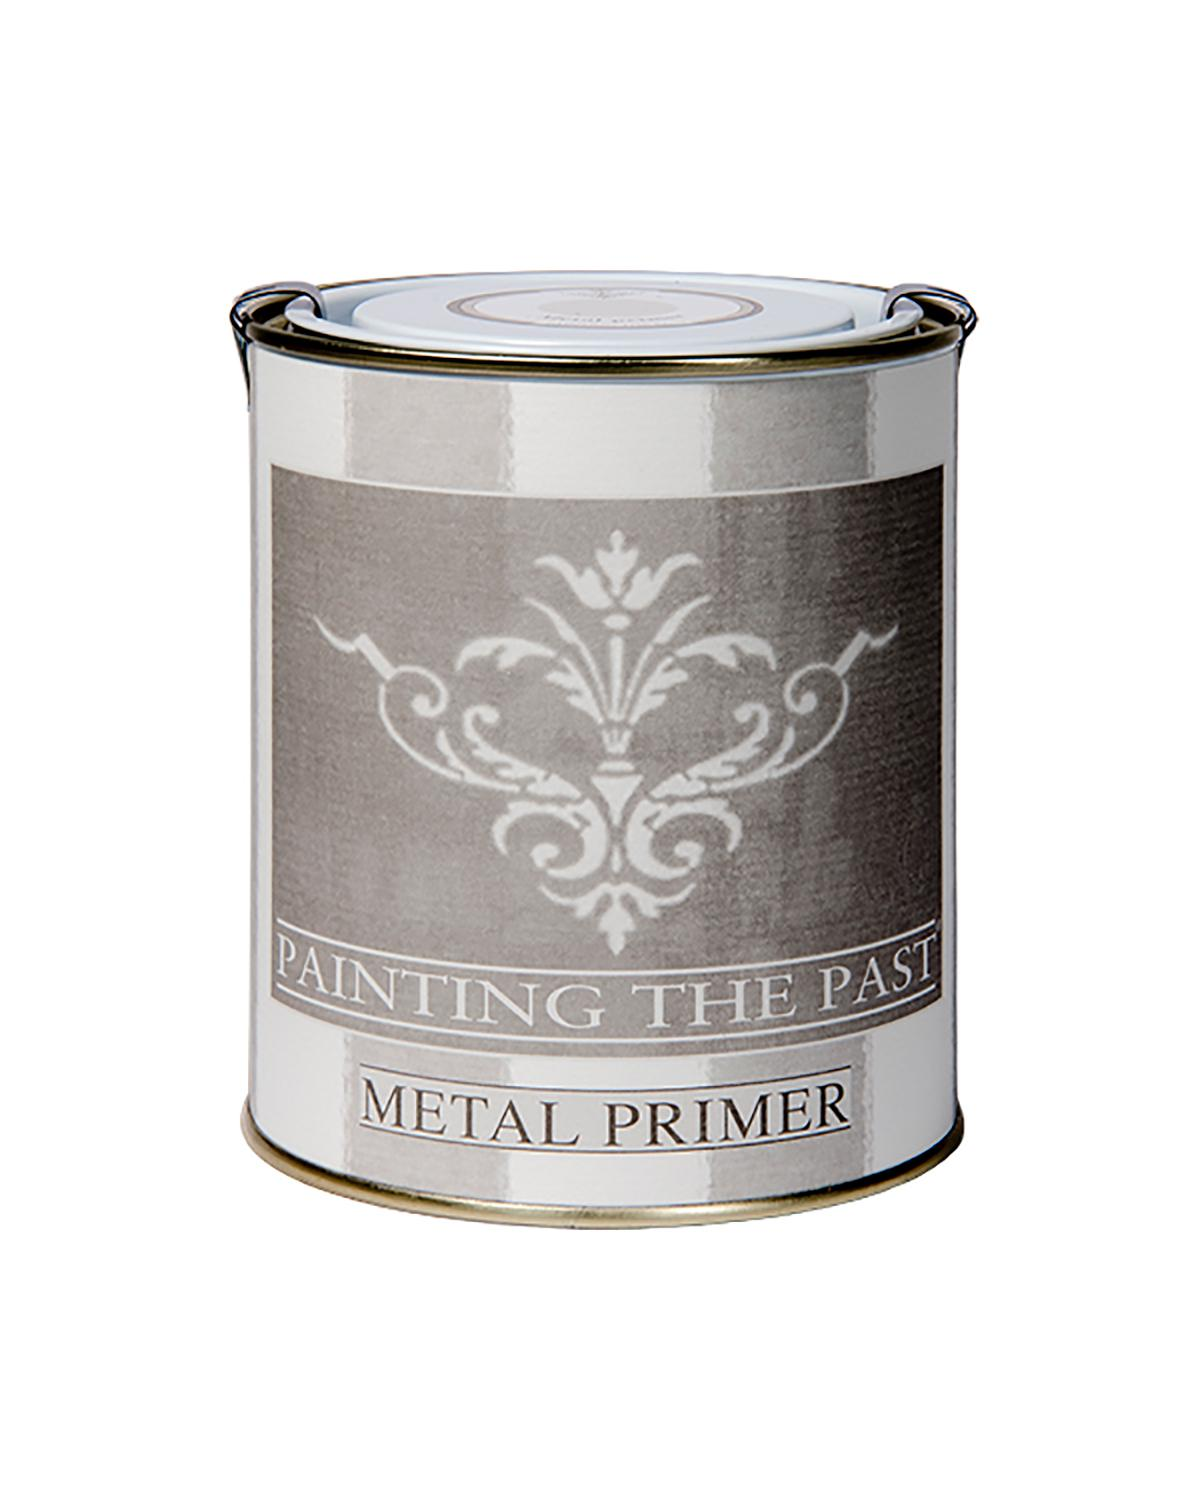 Painting the Past metal primer